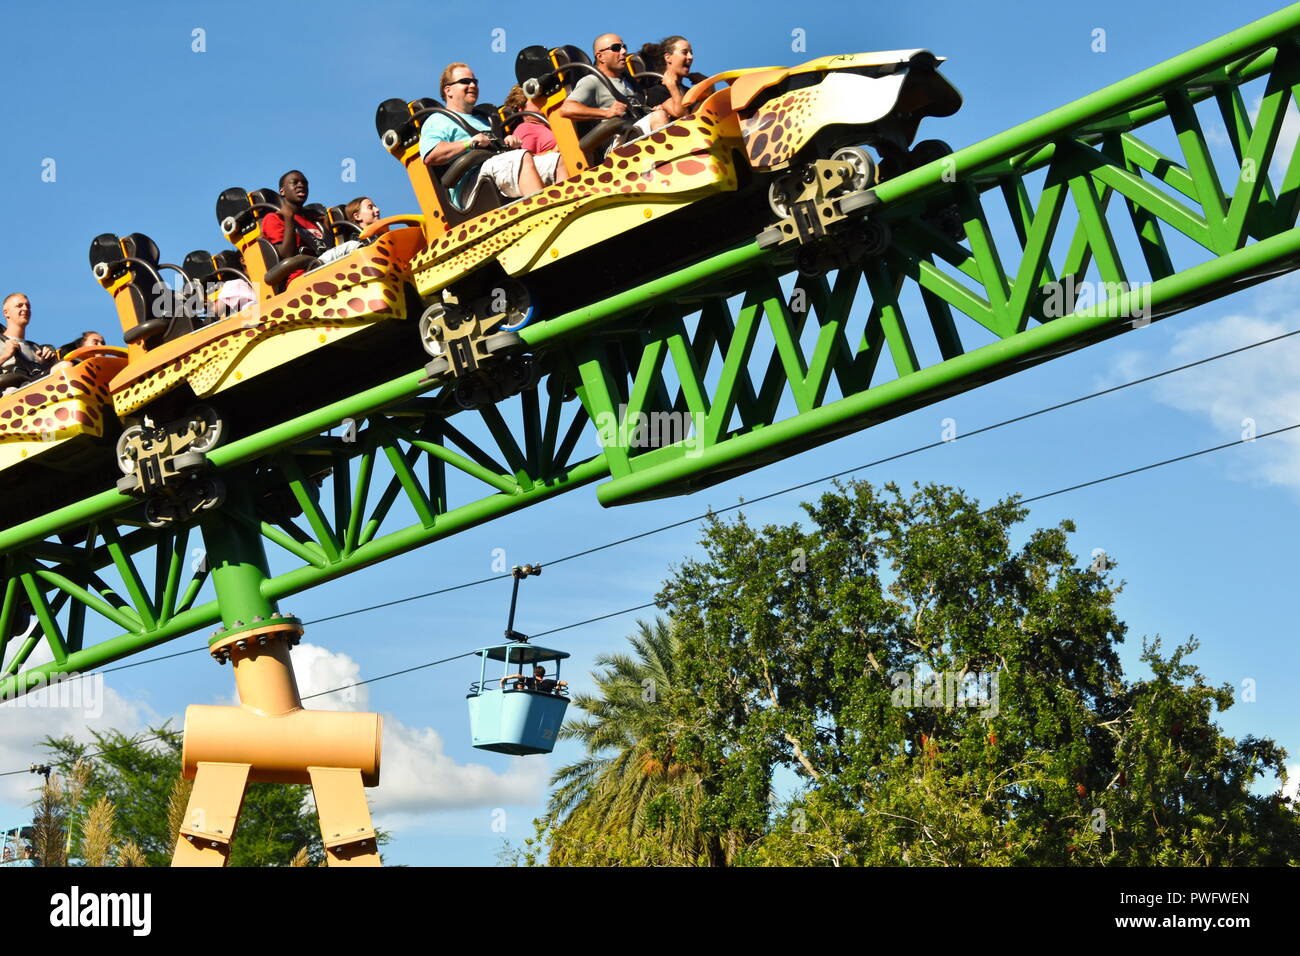 Tampa, Florida; September 29, 2019 Cheetah Hunt Rollercoaster include all the usual combinations as traditional loops, rolls and corkscrews - Stock Image